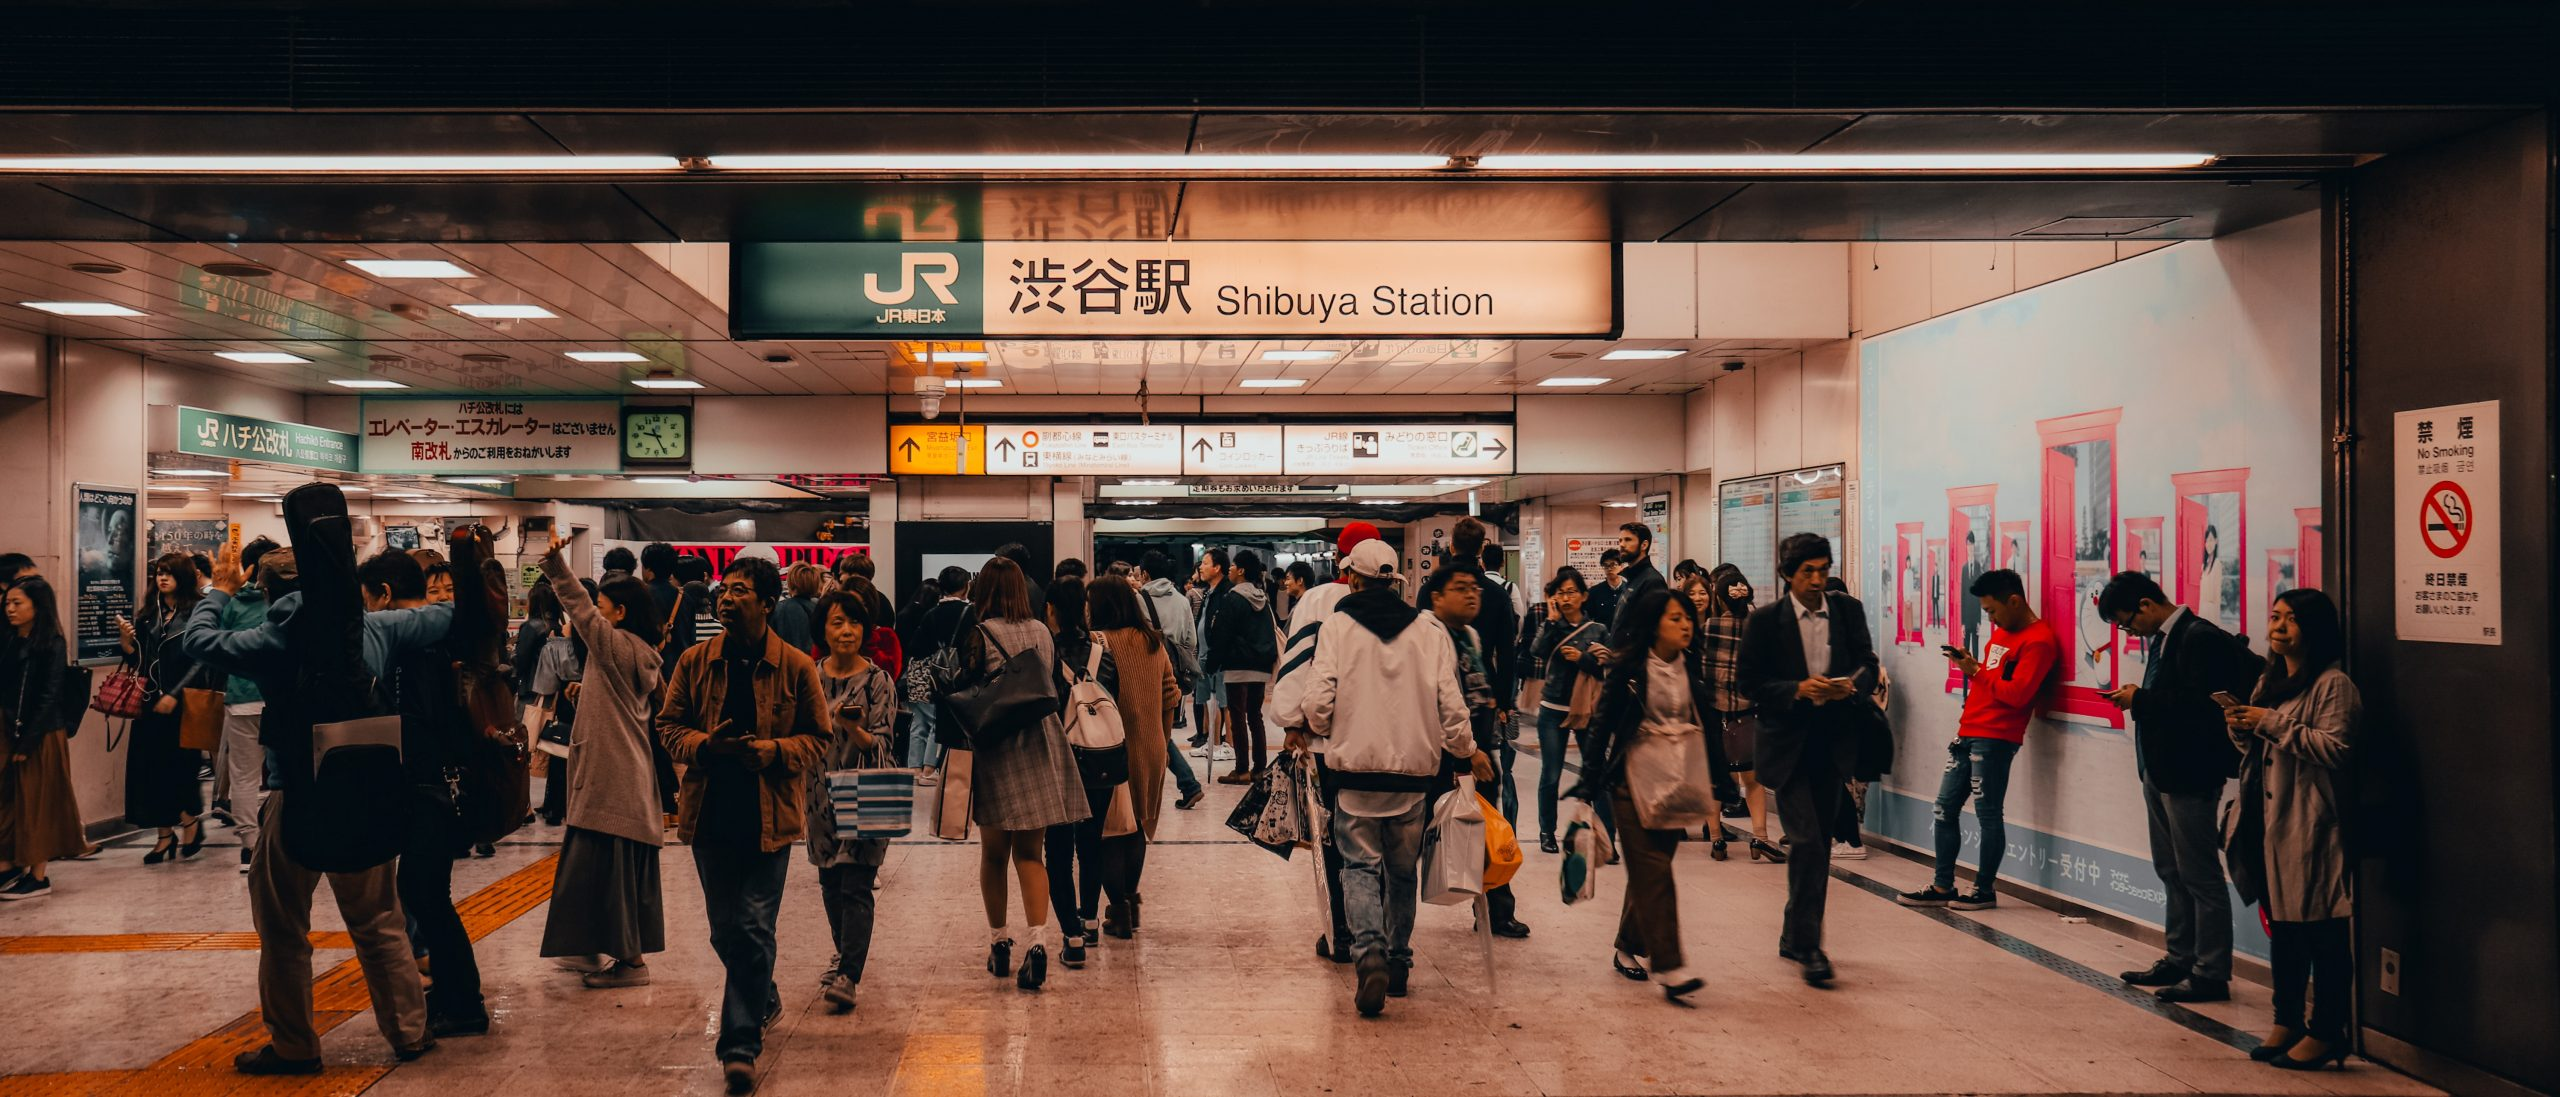 People walking through a train station in Tokyo